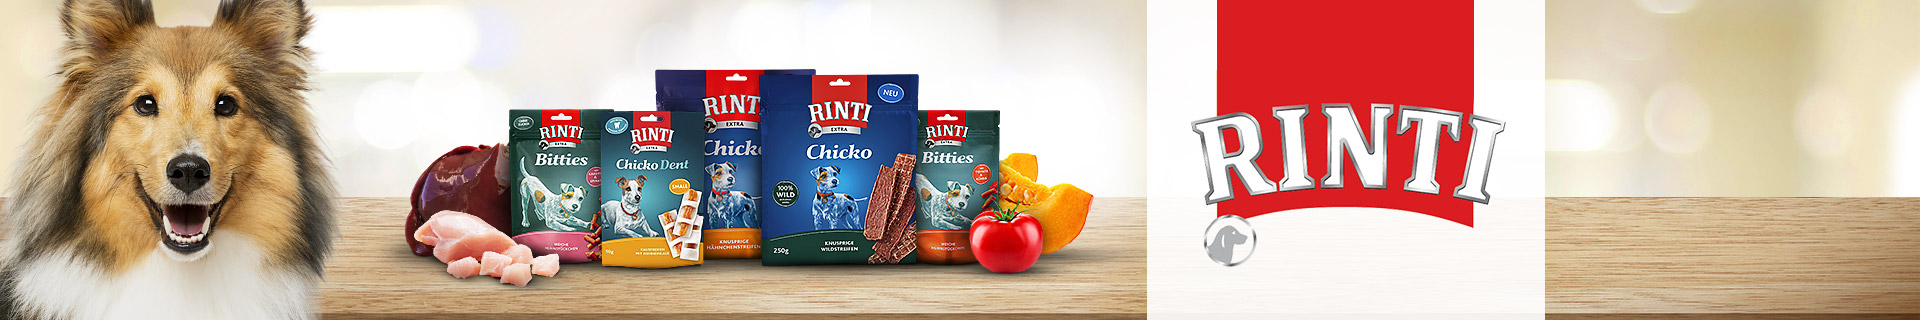 Rinti Hund Snacks Chicko